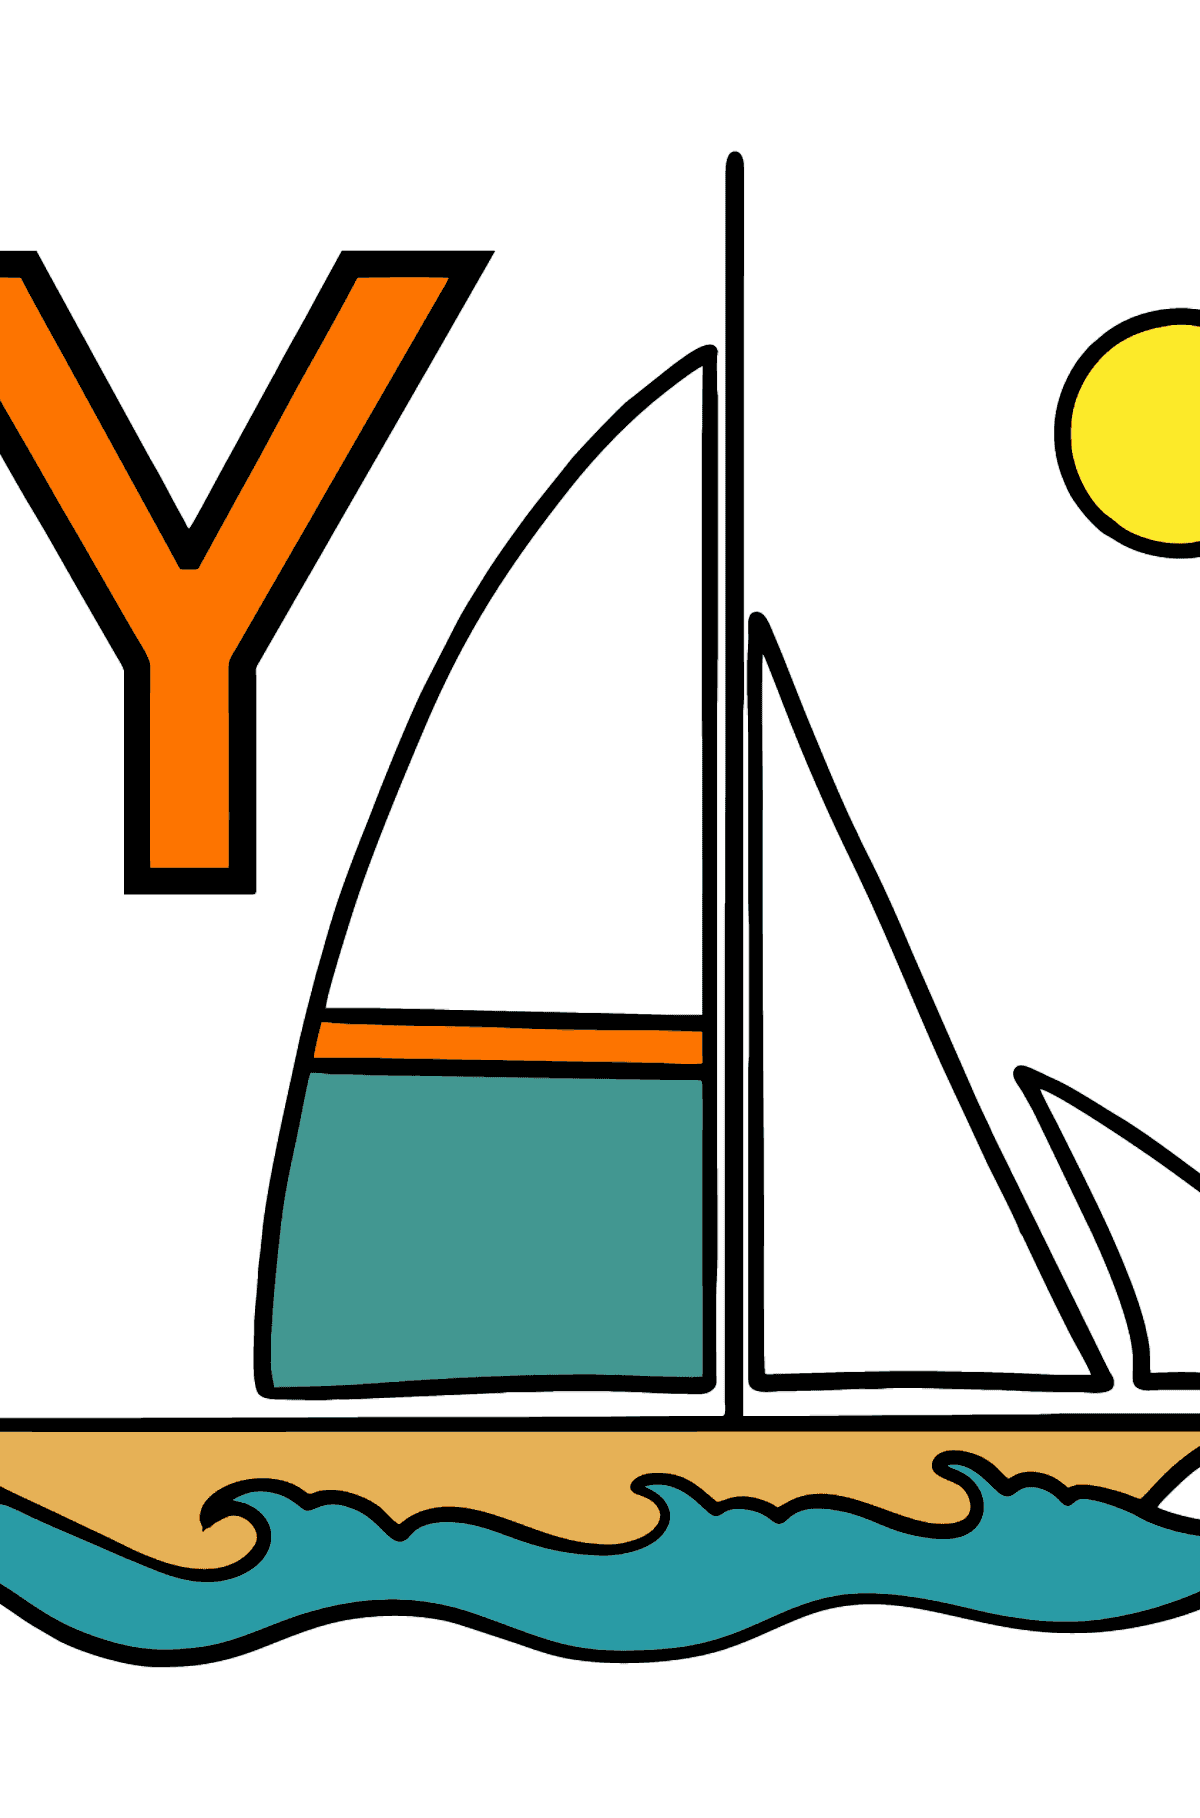 Spanish Letter Y coloring pages - YATE - Coloring Pages for Kids